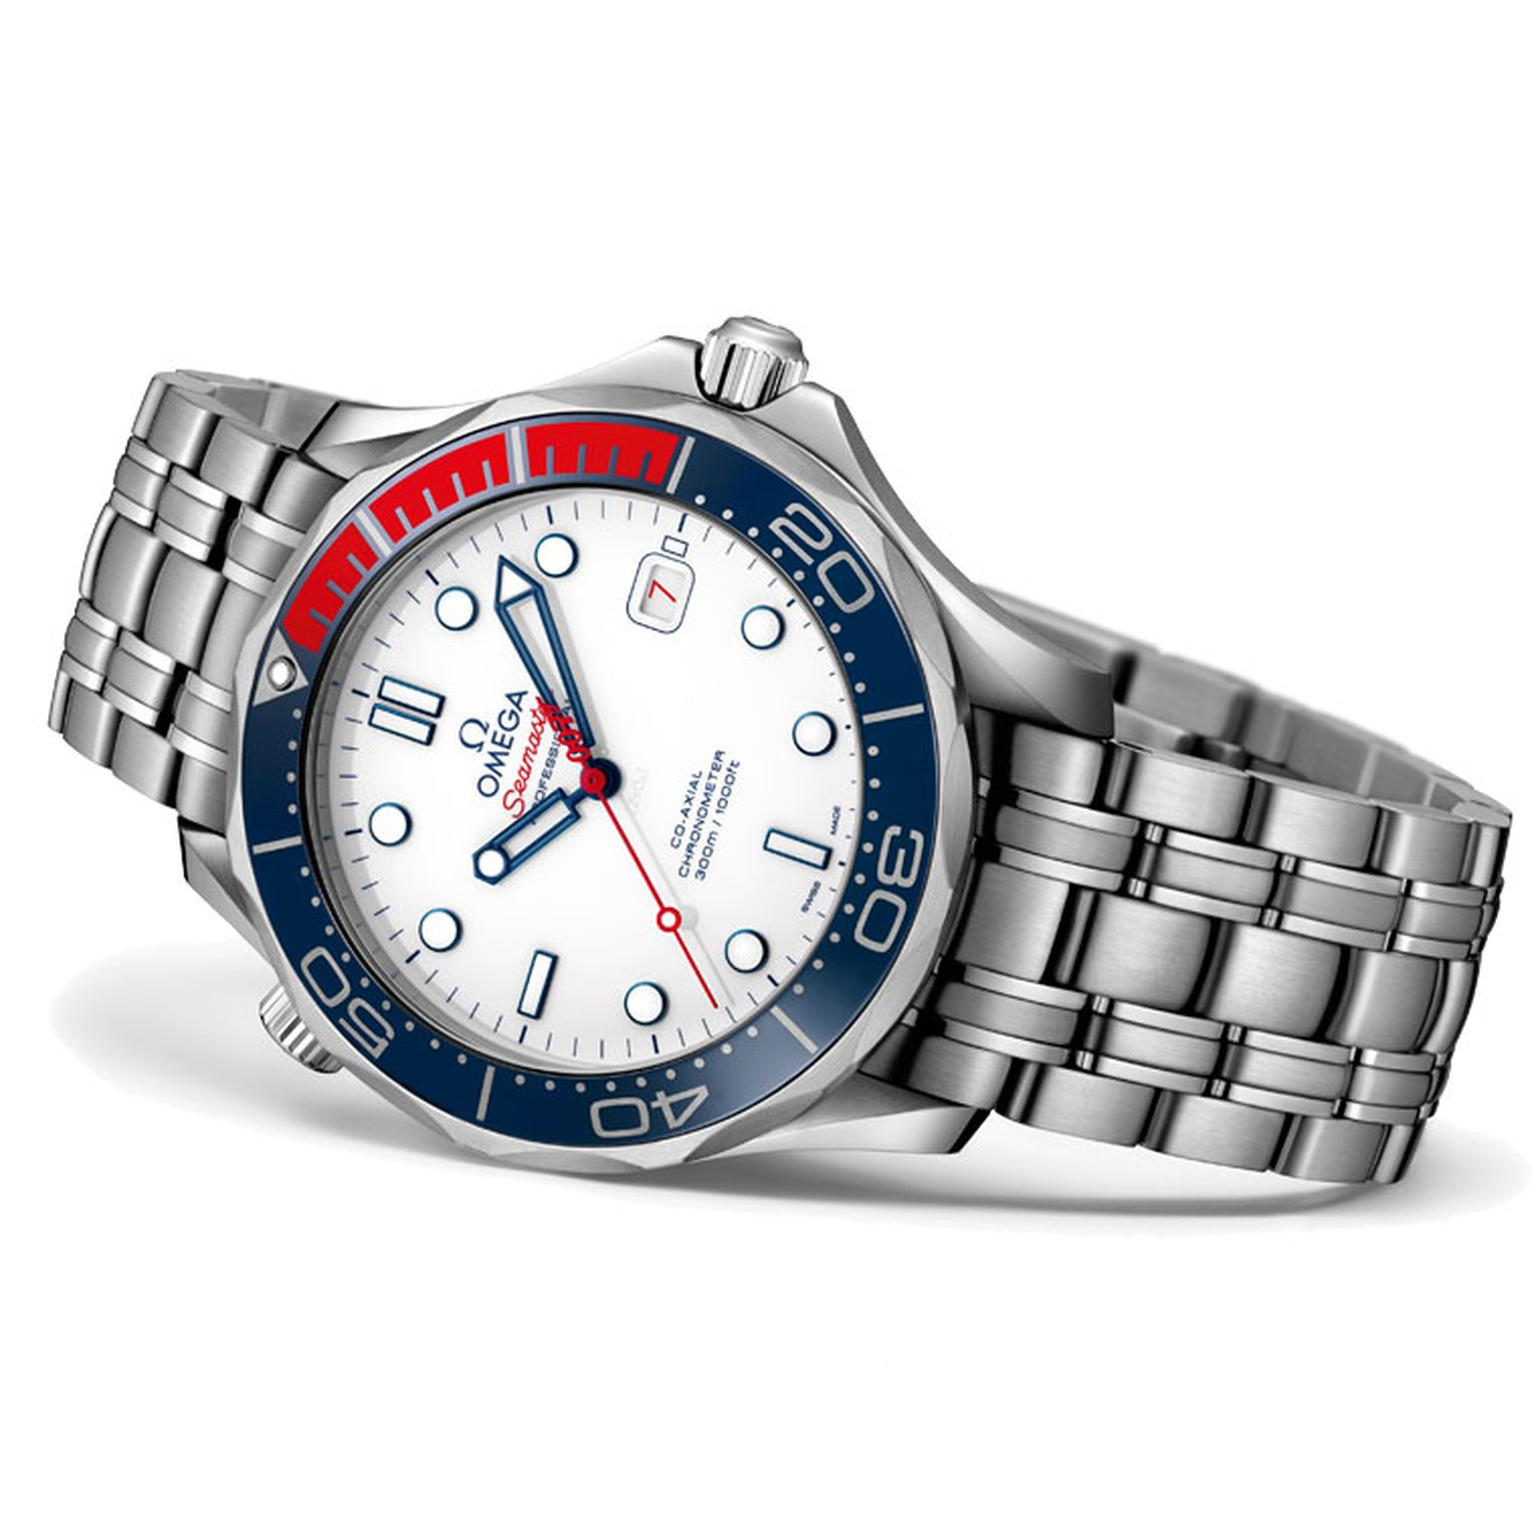 Omega Seamaster Commander's Watch steel bracelet